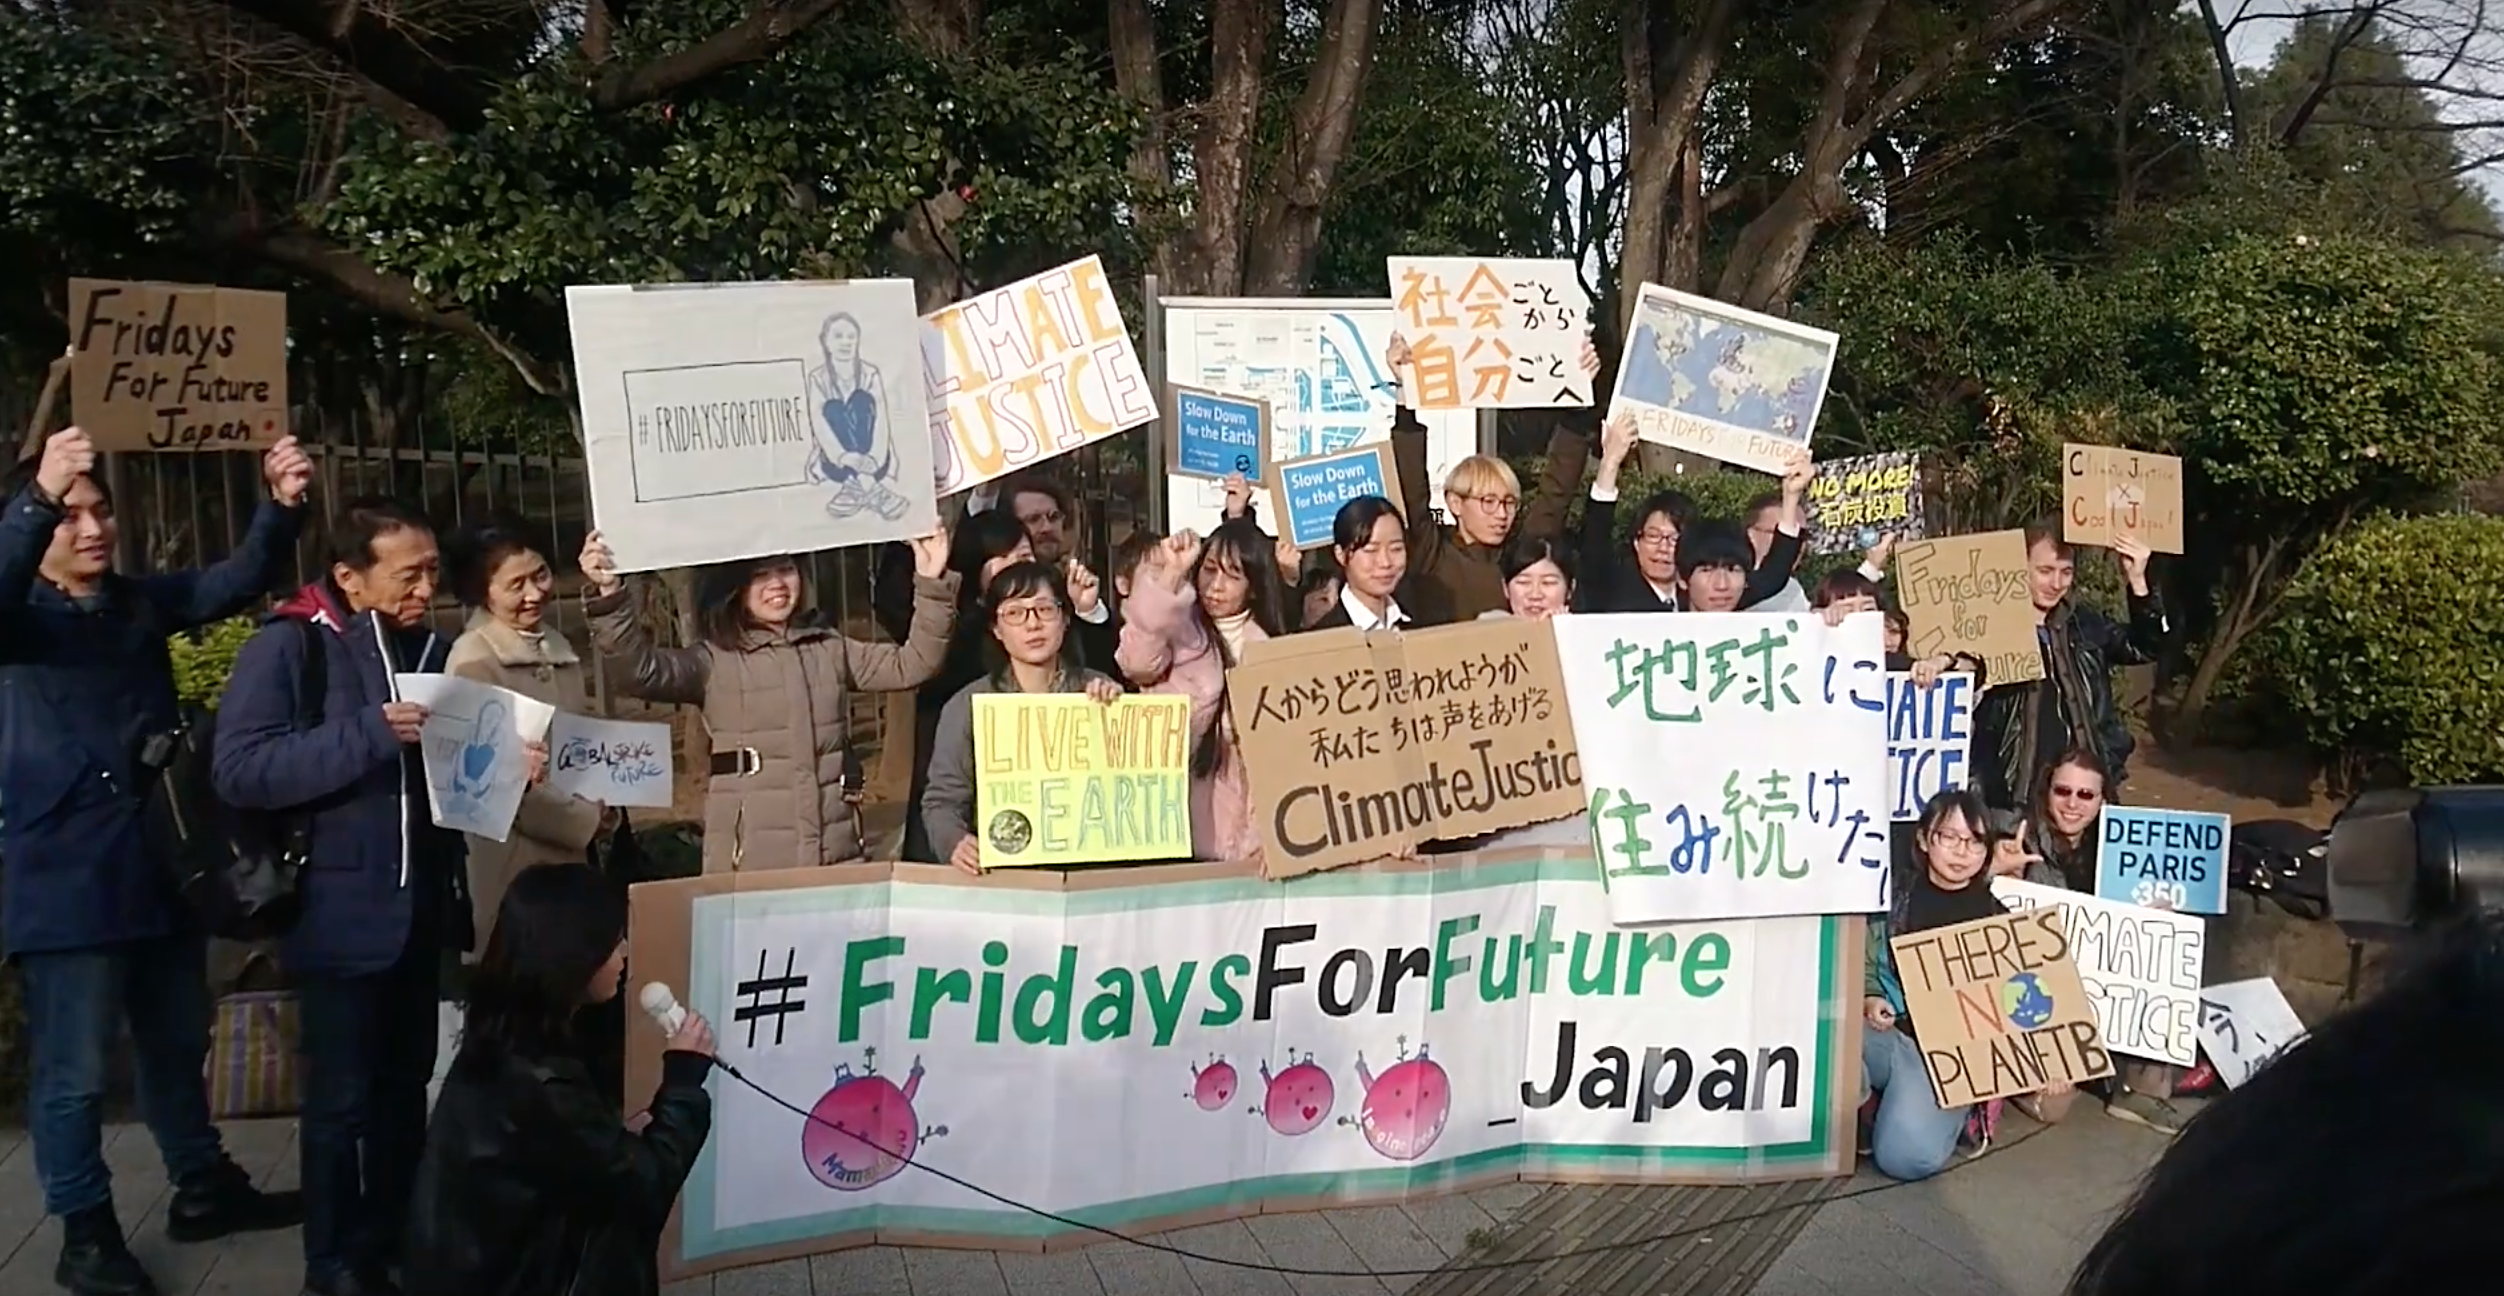 Students from around the world skipped a day in class in support of the protests. (Image: YouTube/Screenshot)